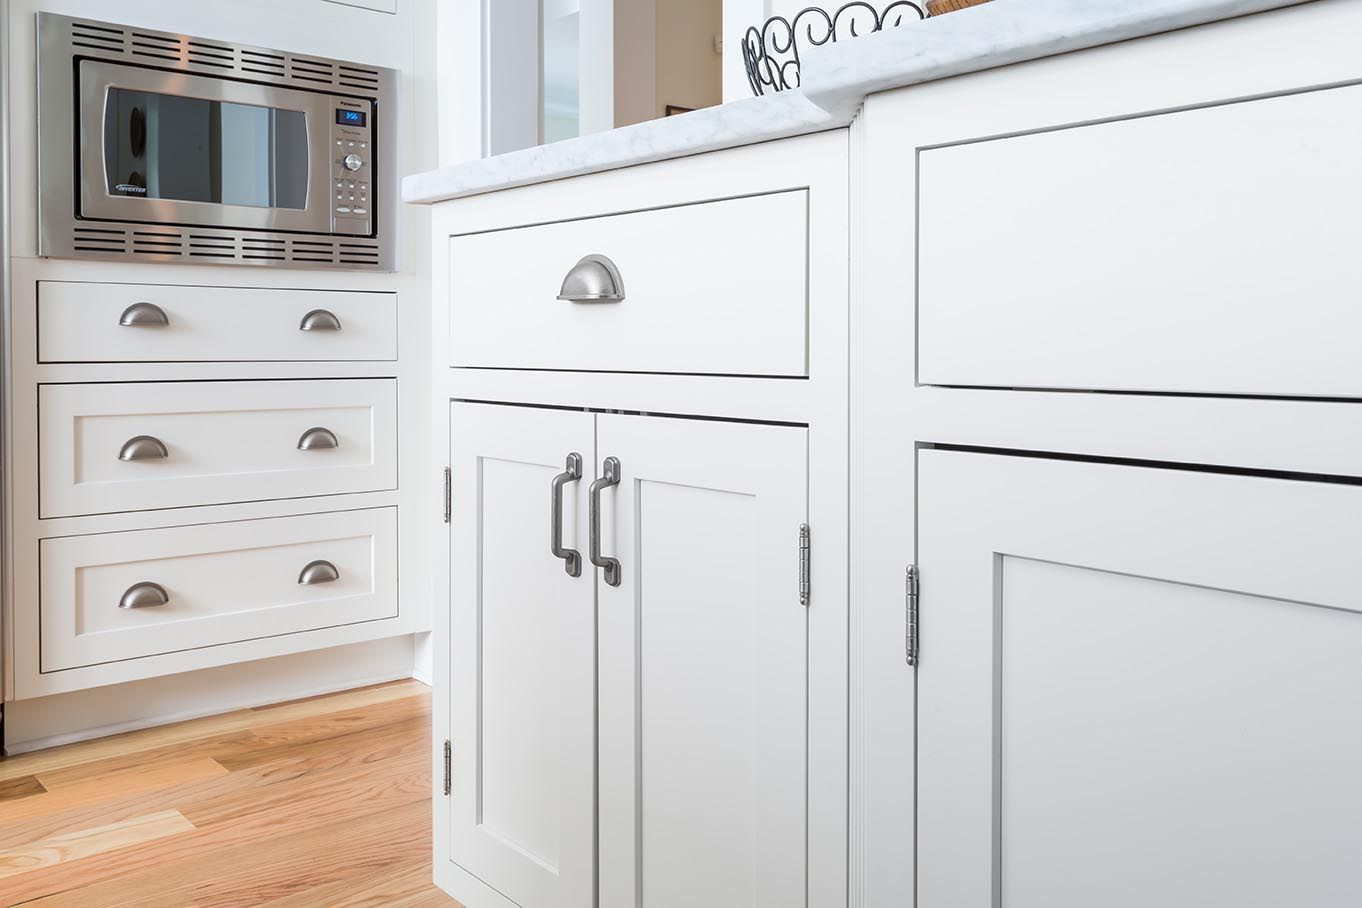 Close Up Picture Of Painted White Inset Cabinets In A Shaker Style Door With Revealed Inset Cabinets Kitchen Cabinet Doors Kitchen Cabinet Organization Layout